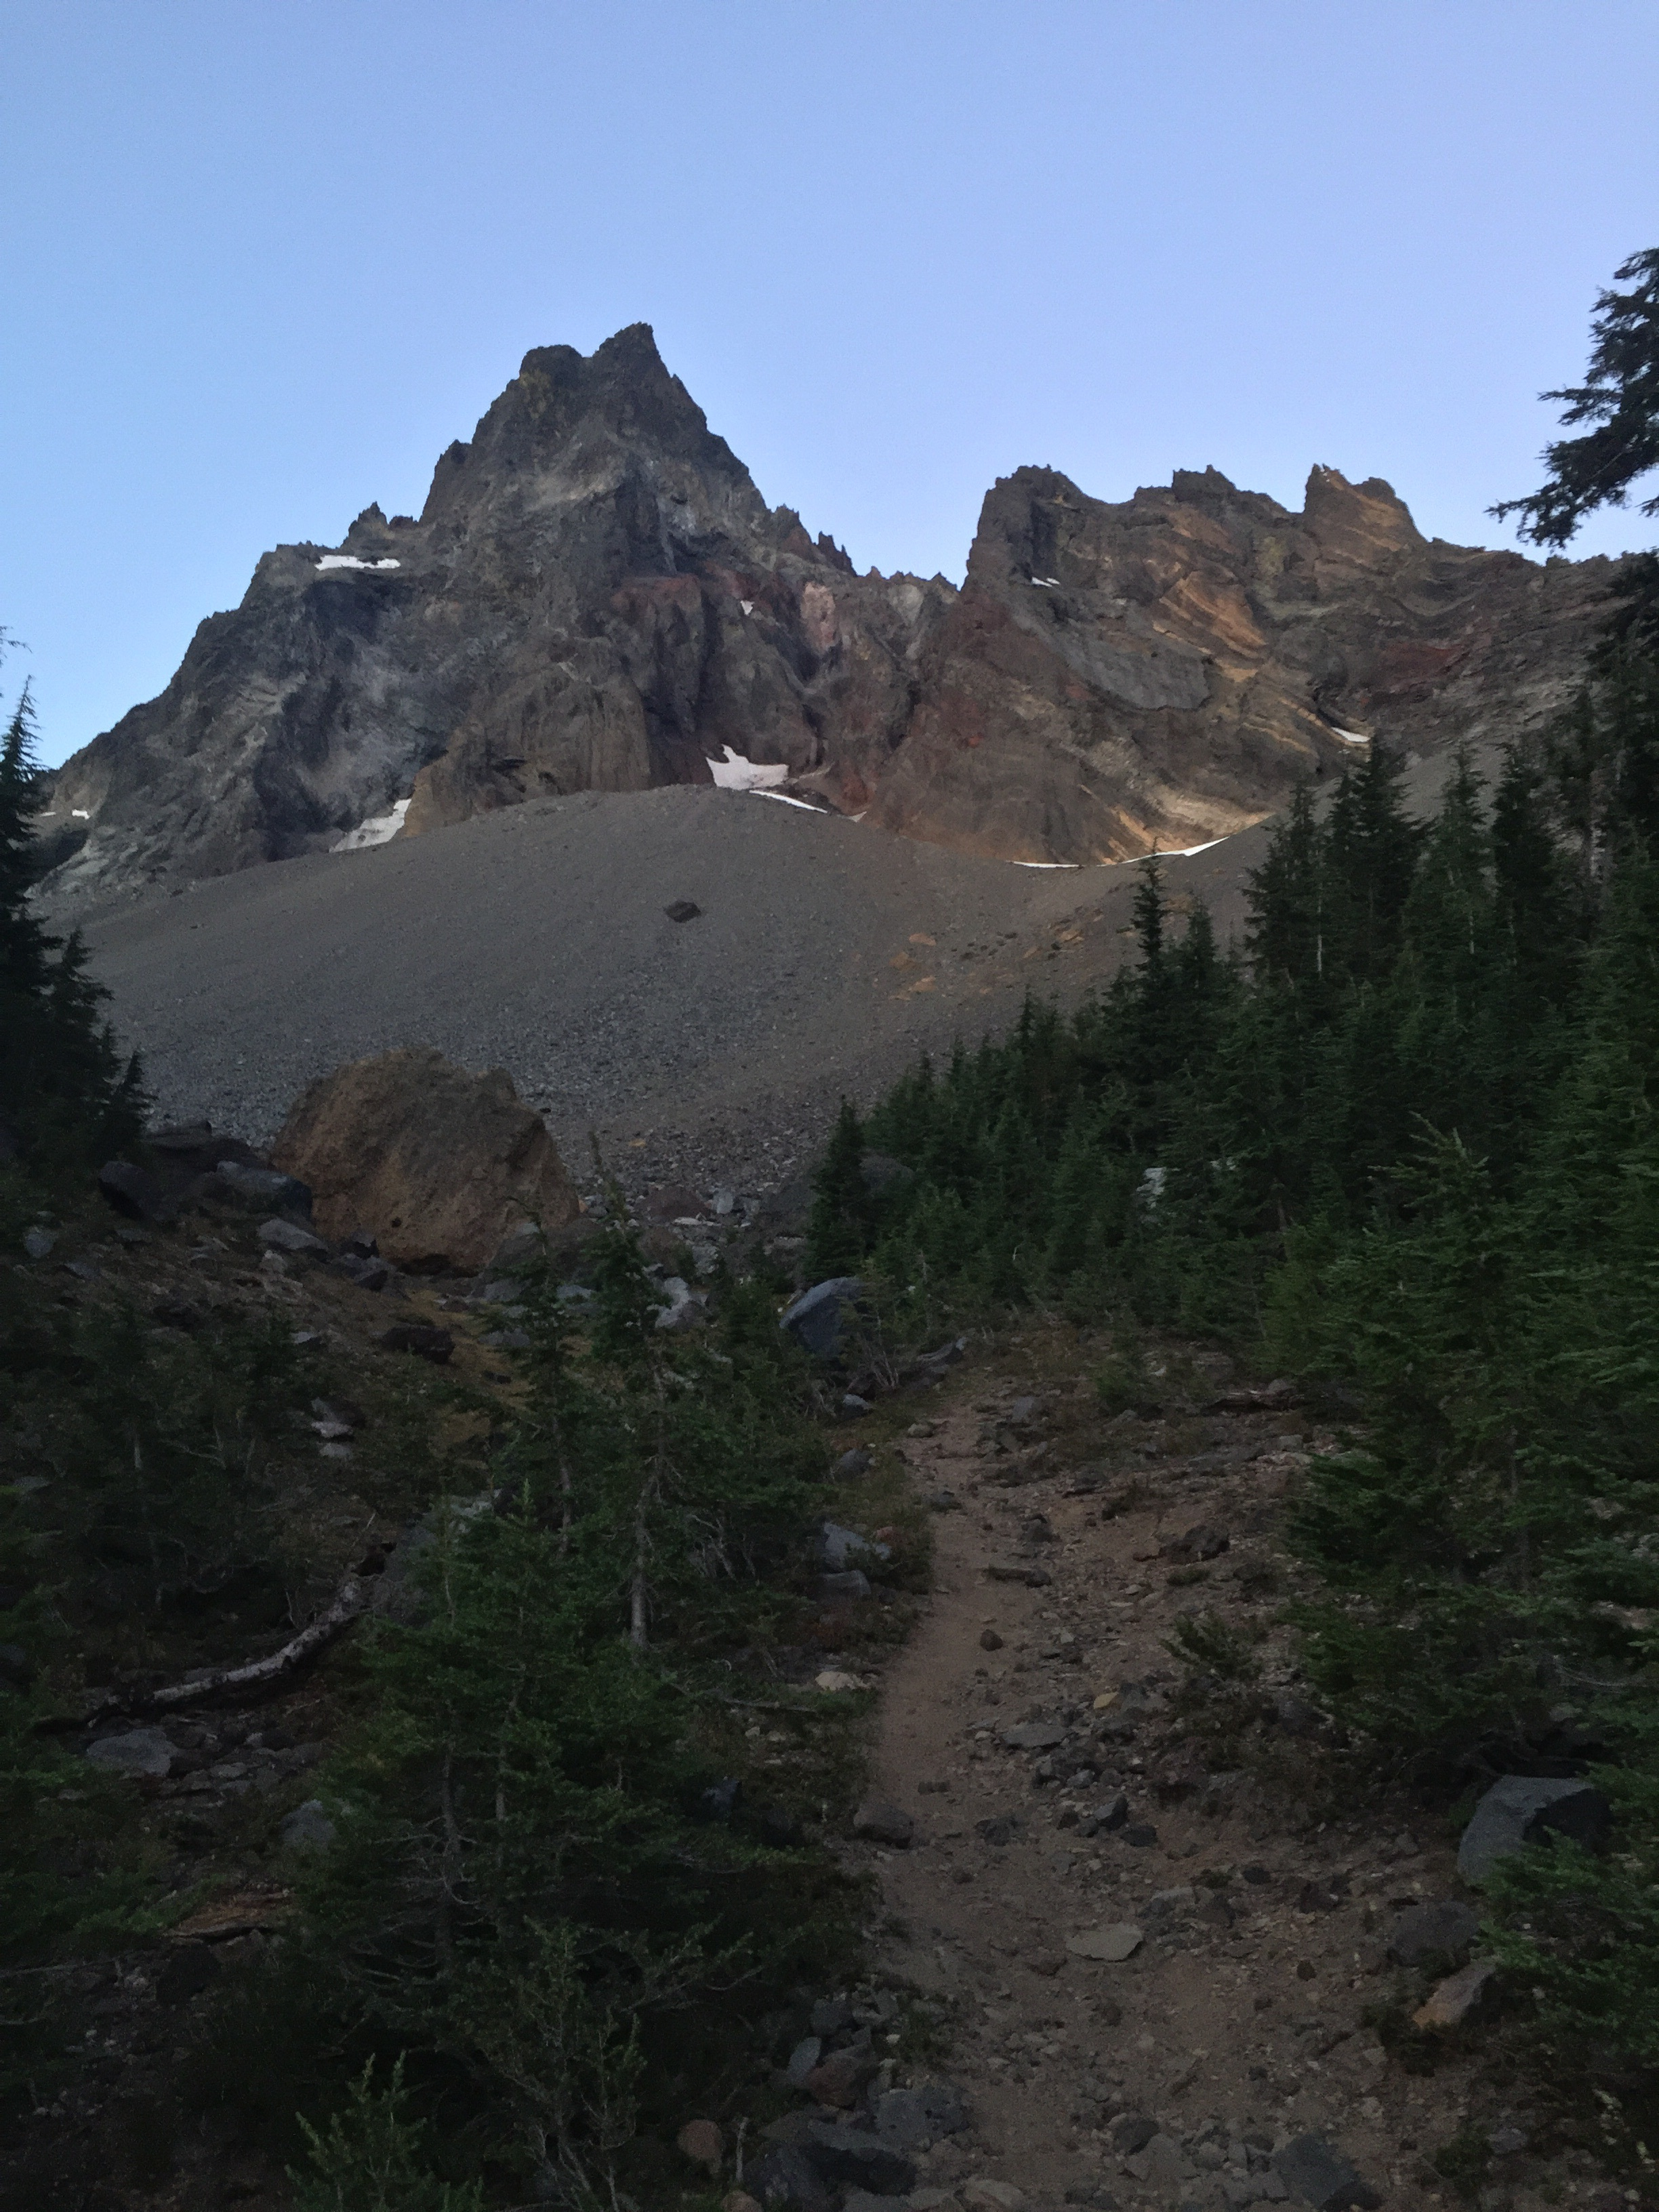 Early dawn light on Mt. Thielsen from our campsite along Thielsen Creek